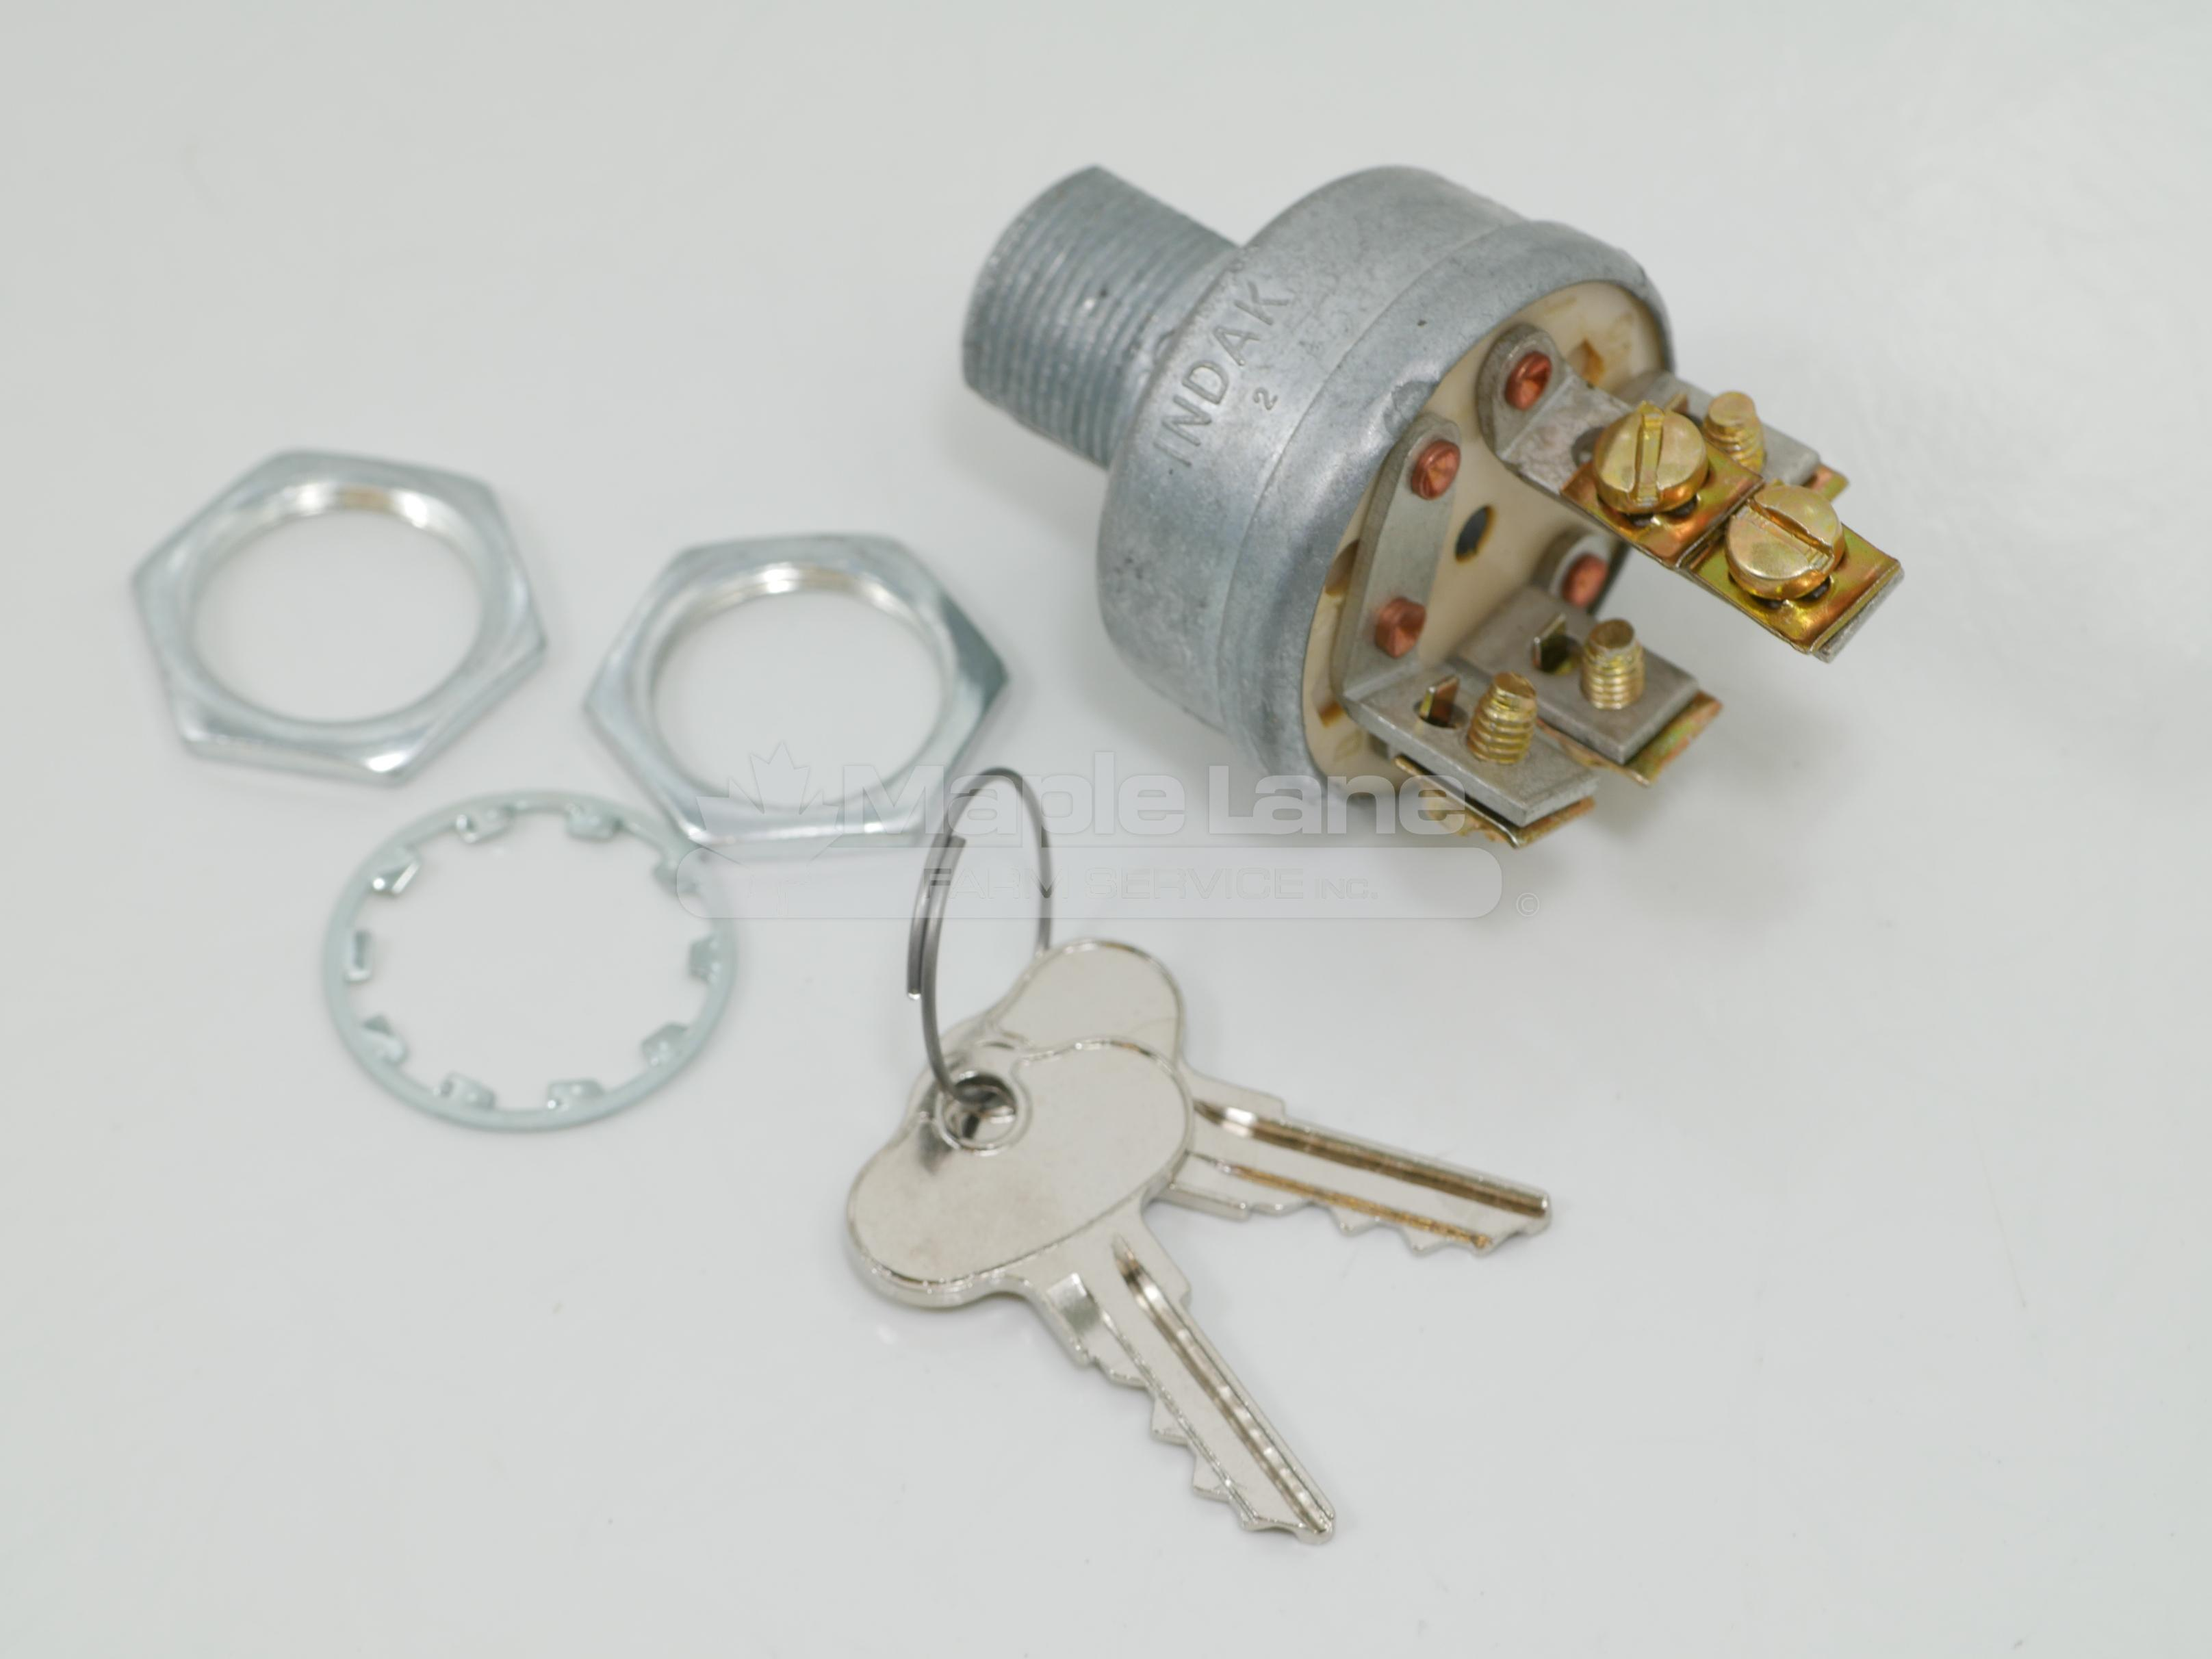 089069 Ignition Switch with Key